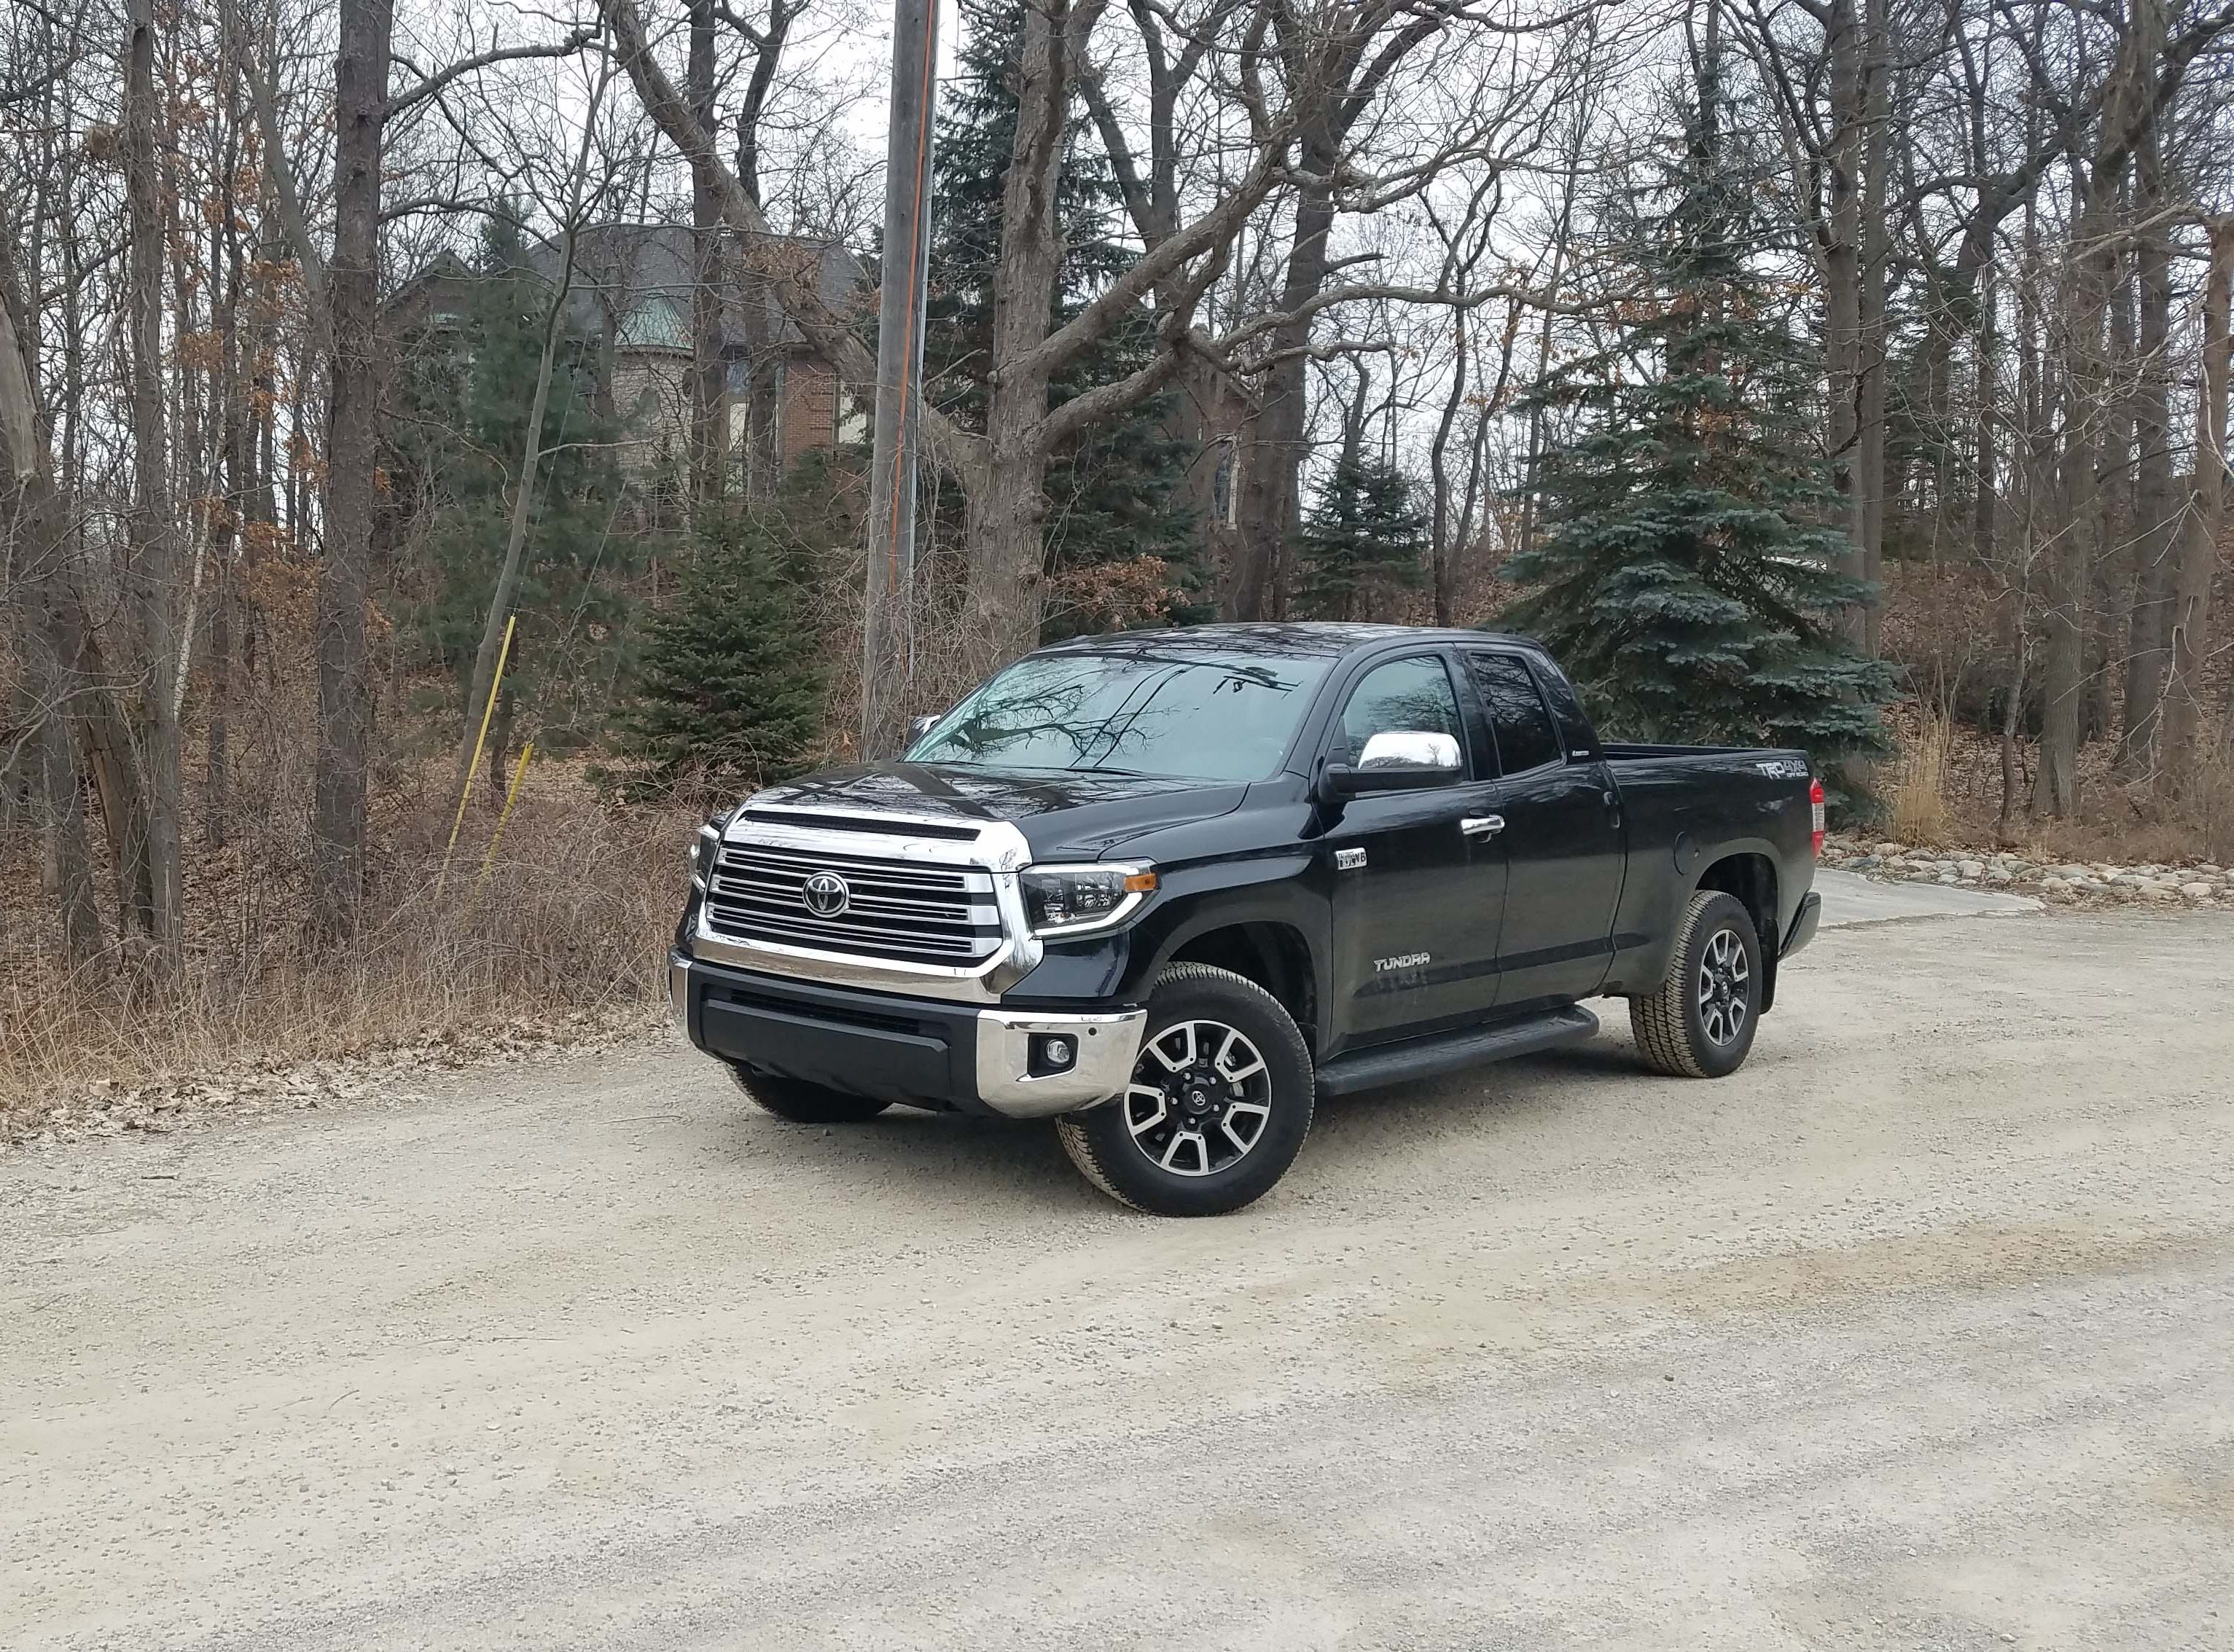 Some of Detroit's nicest homes are on its worst dirt roads. The 2019 Toyota Tundra will get you there in all kinds of weather.